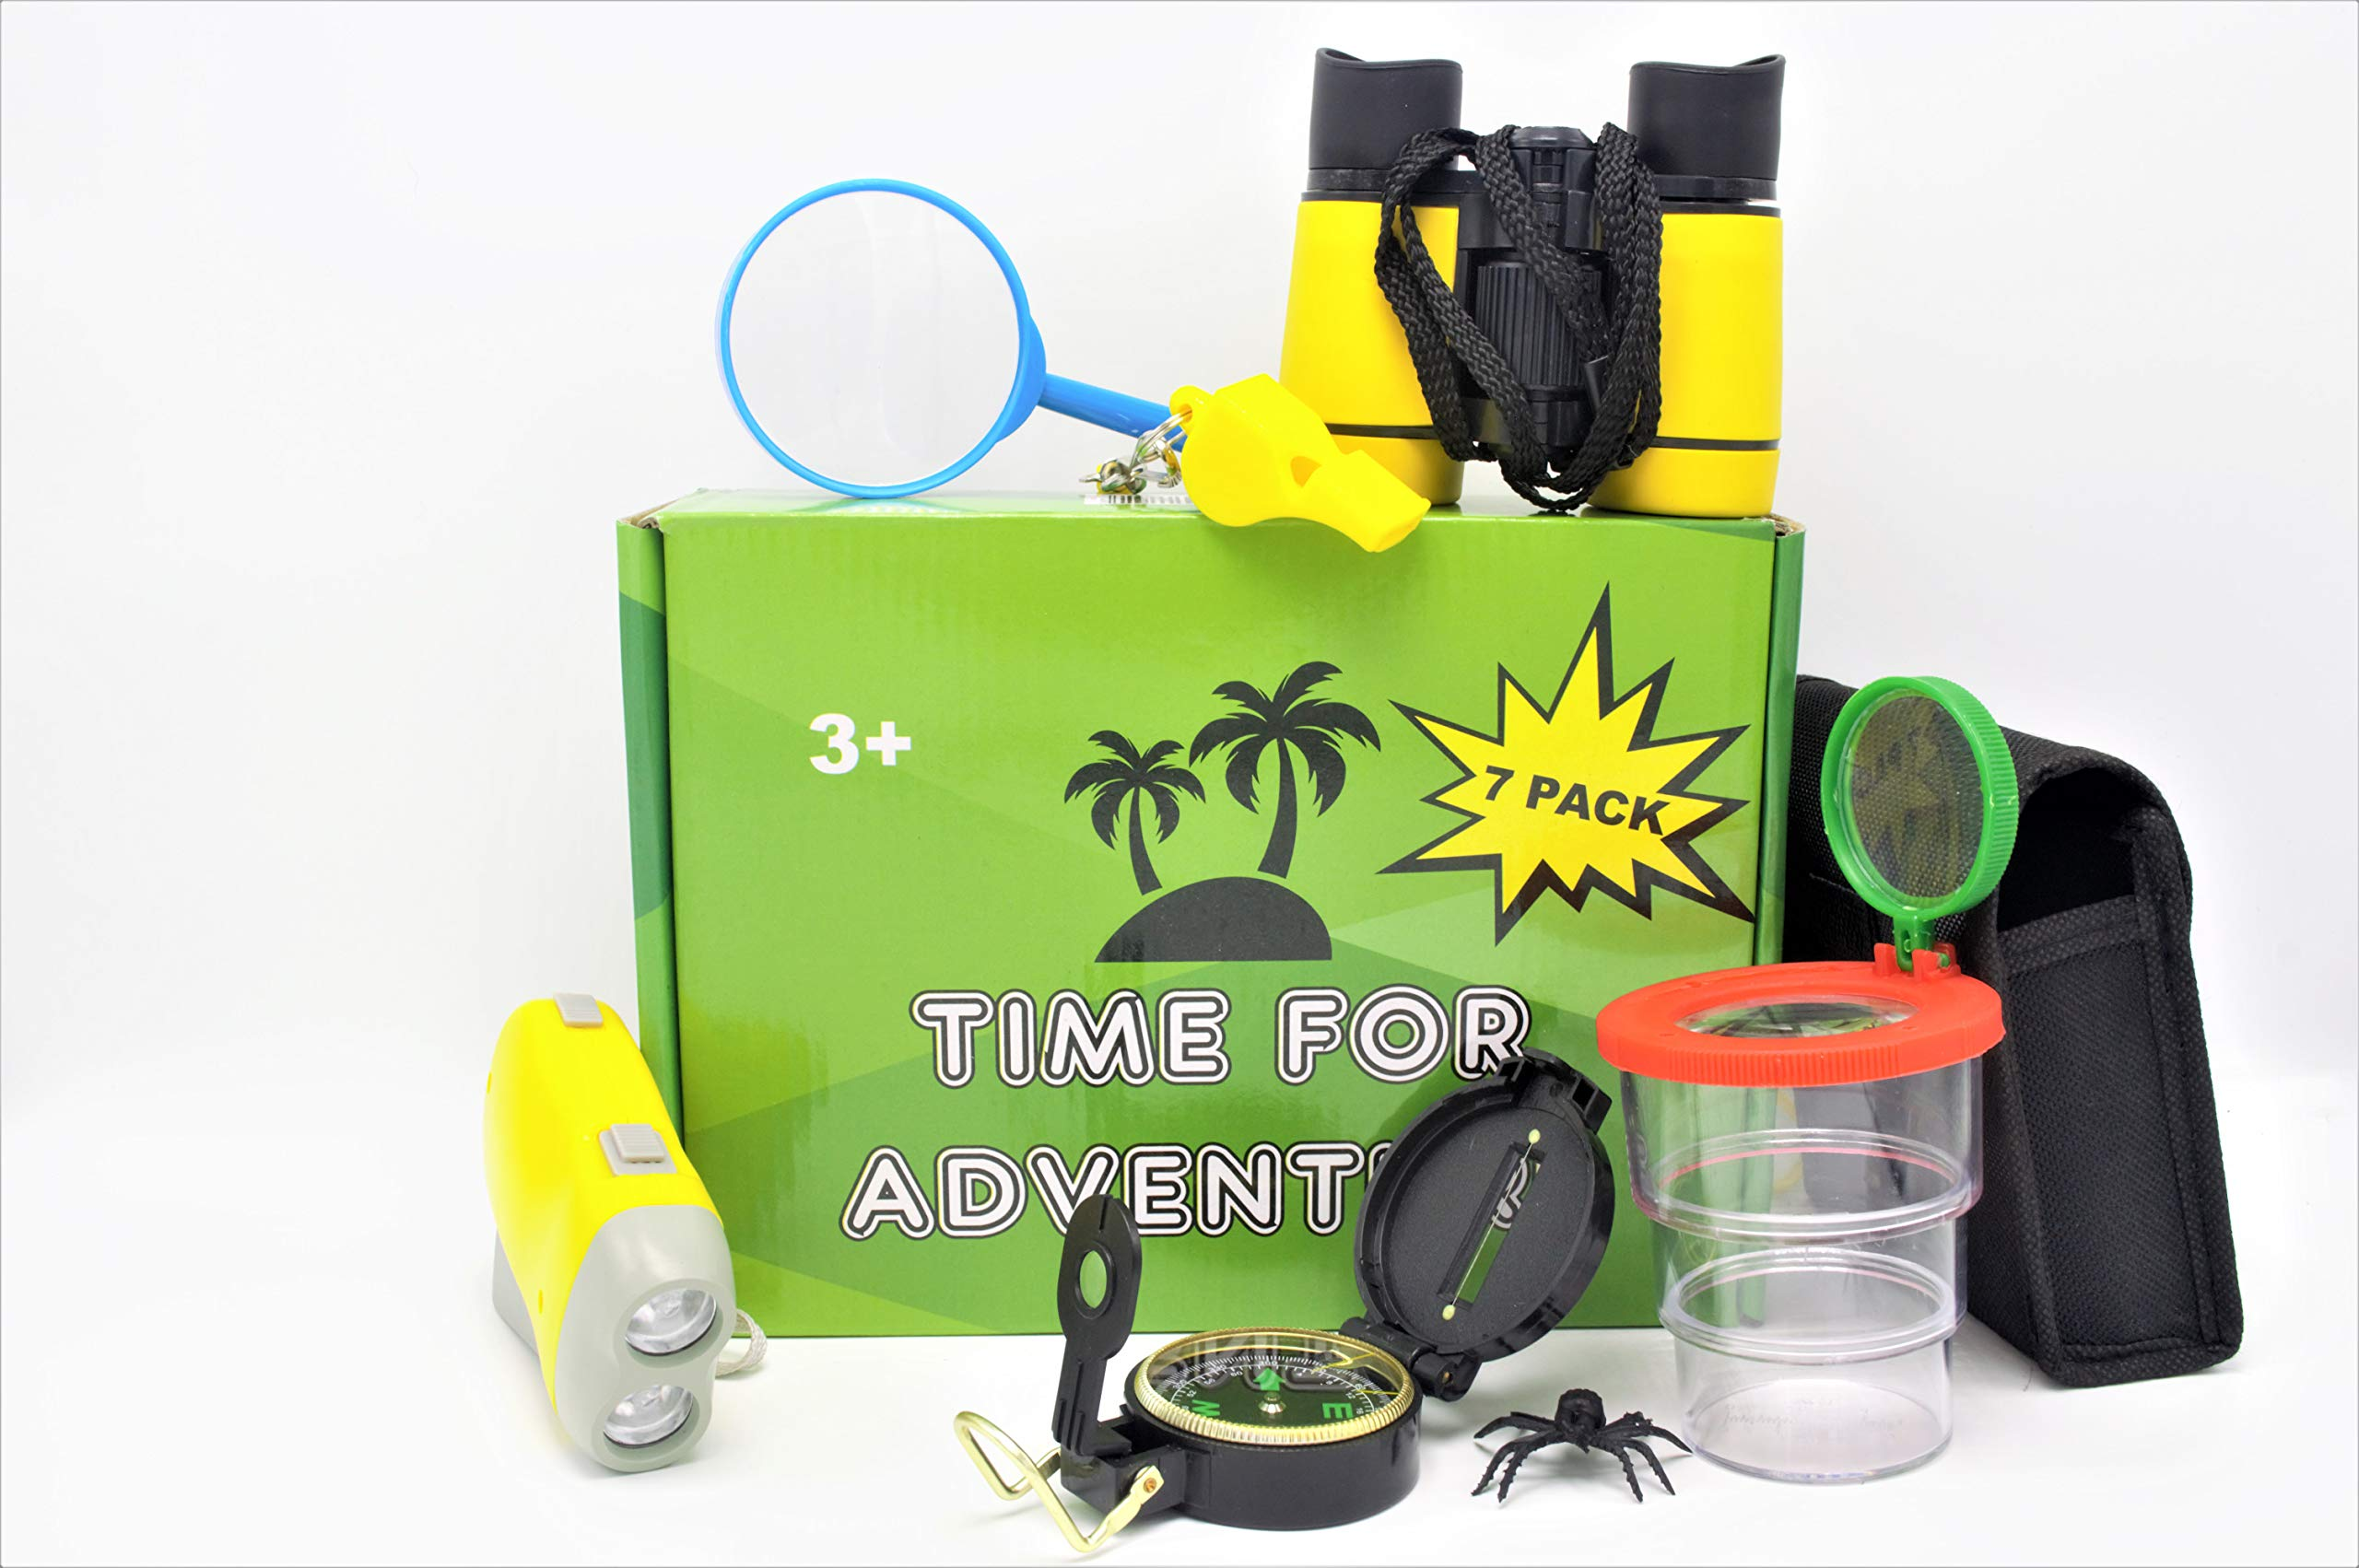 Time for Adventure Educational Kit for Kids, Adventure Children, Nature Kit Set , Outdoor Explorer Kit for Kids. Outdoor Playset - Great Gift set for birthday, holiday, camping